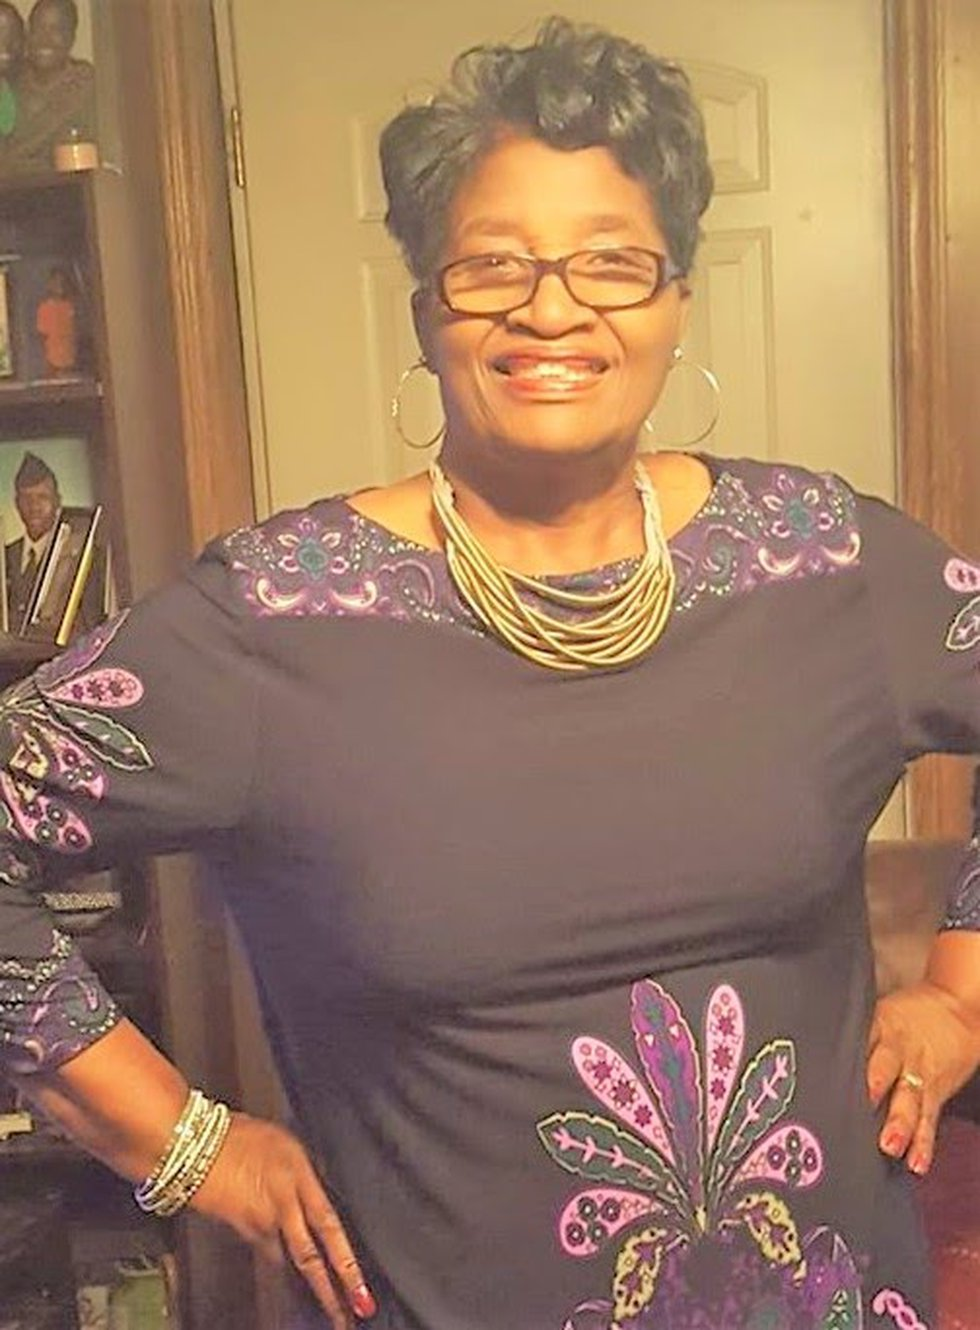 Twins sisters and children test positive for COVID-19. Their mother, Deloris Greene dies from...